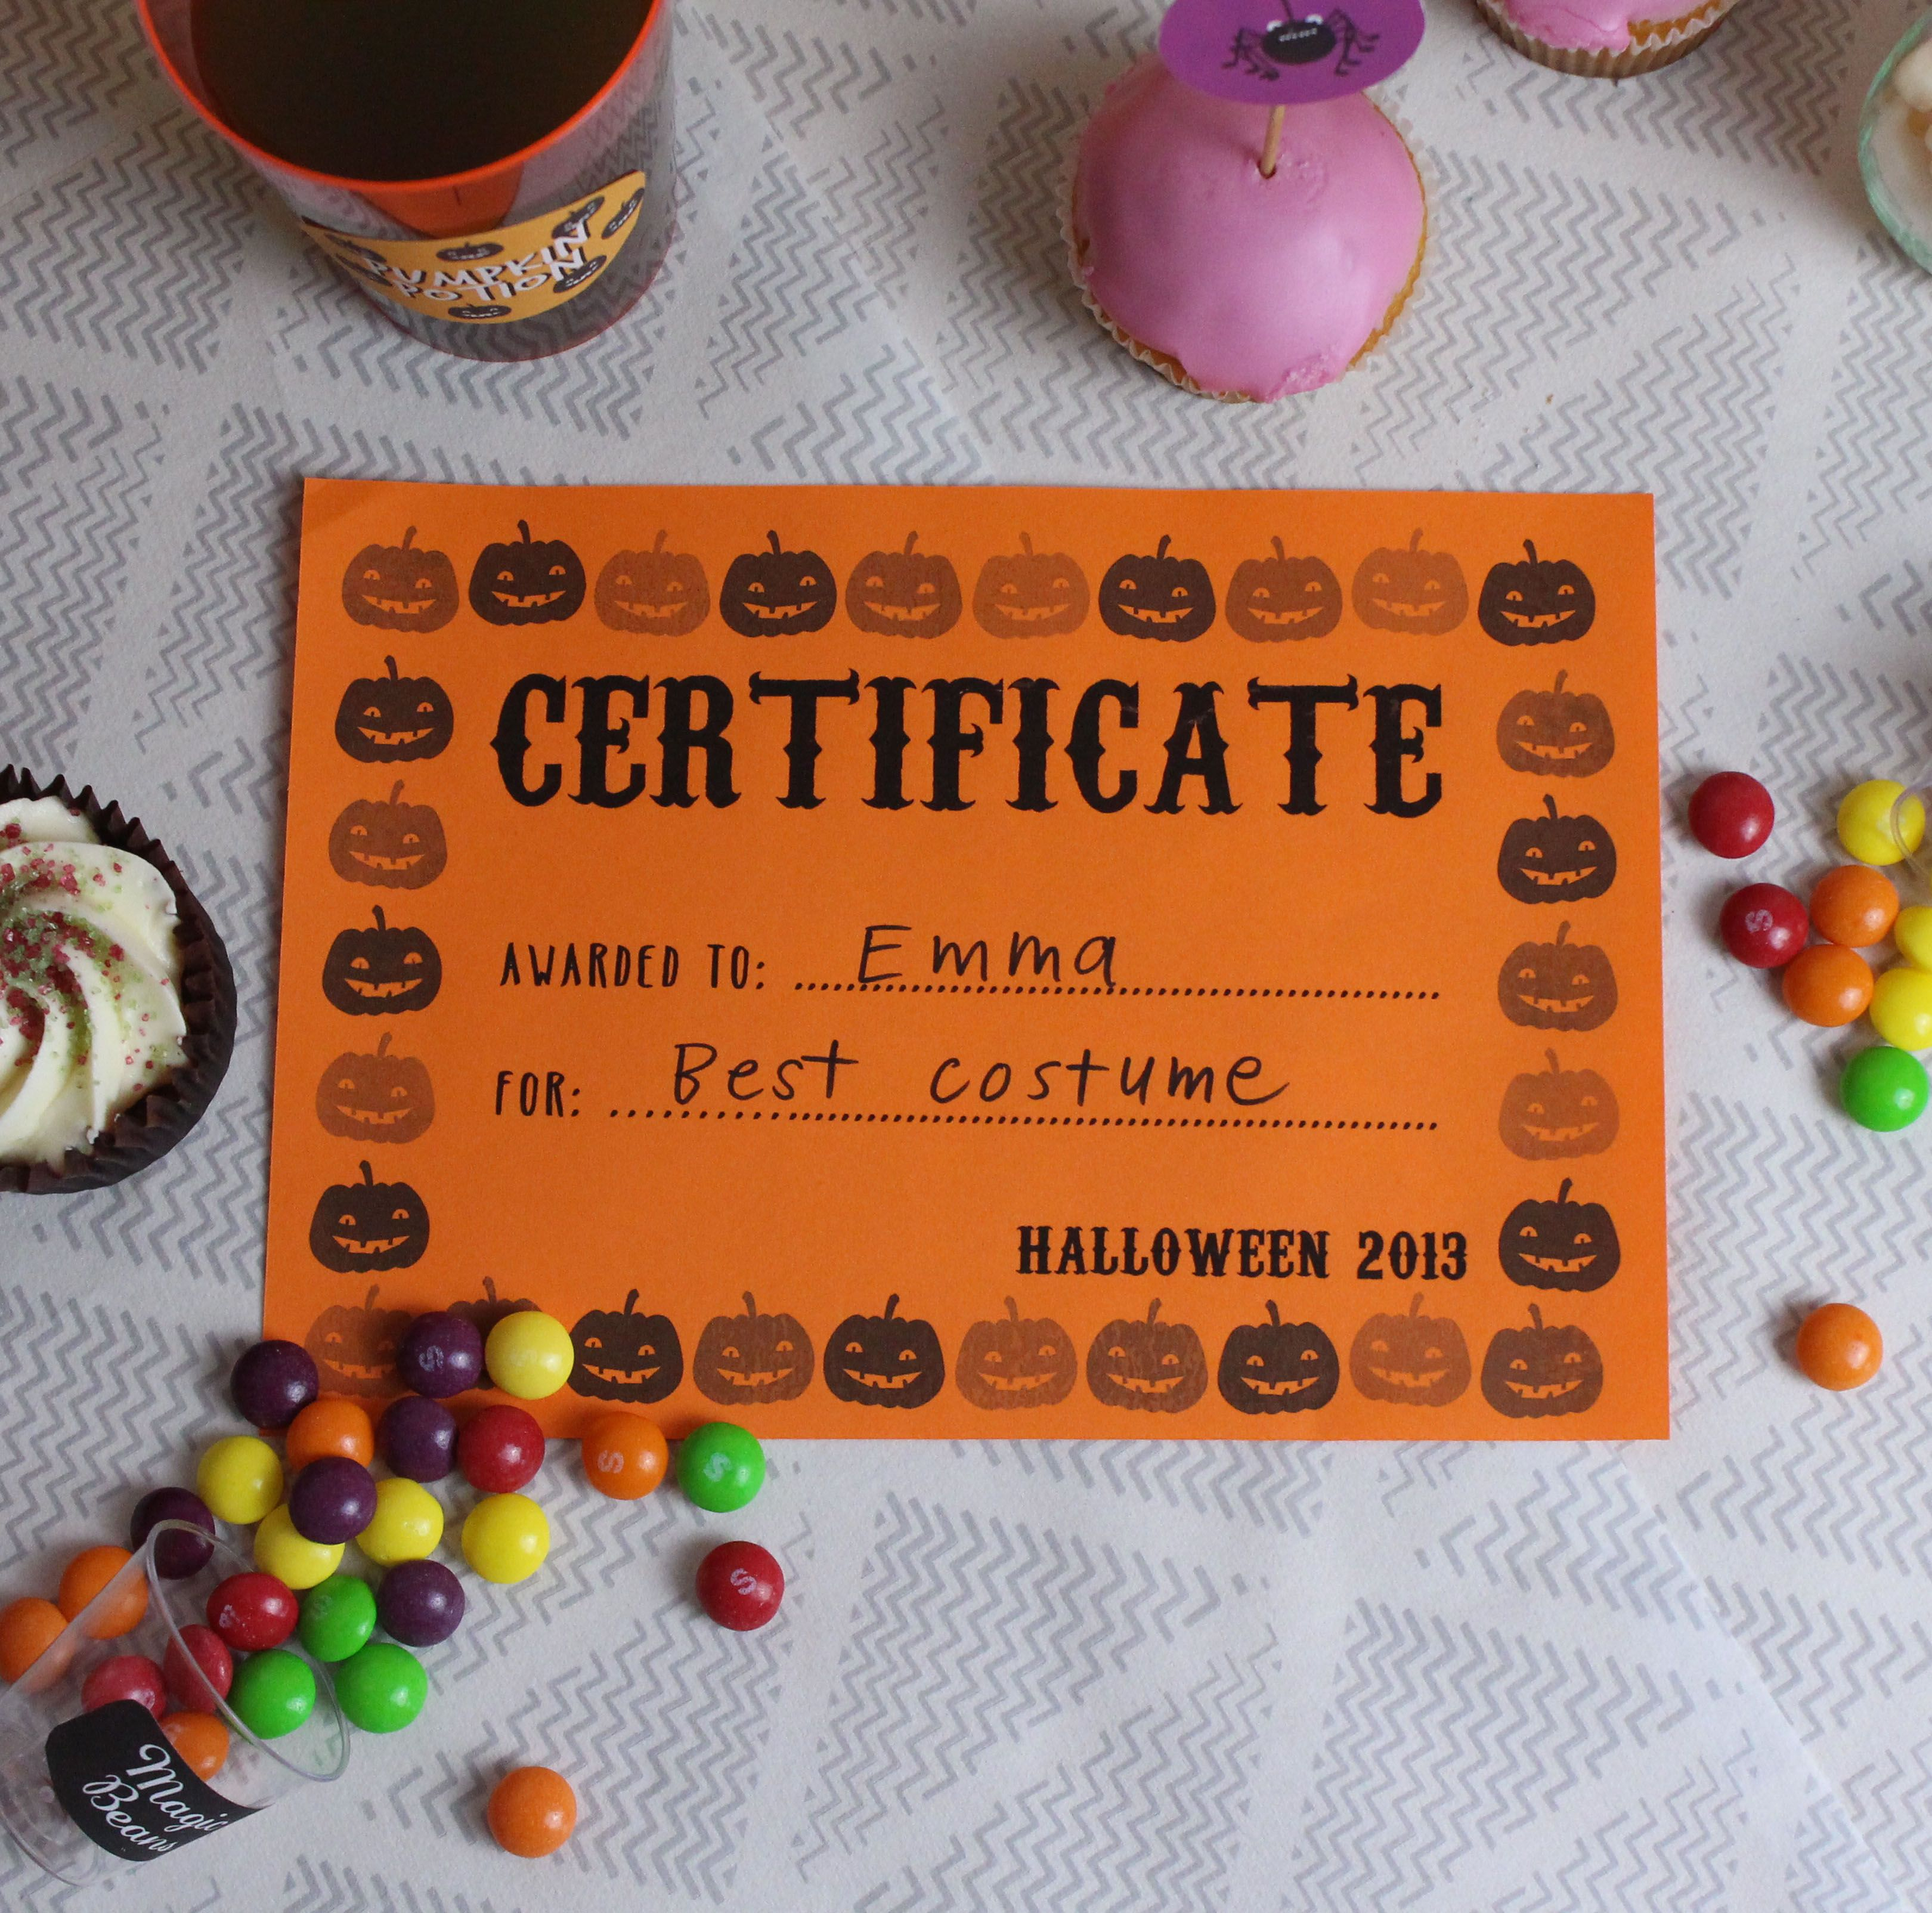 Free Printable Certificates For Halloween!   Our Halloween Party - Best Costume Certificate Printable Free